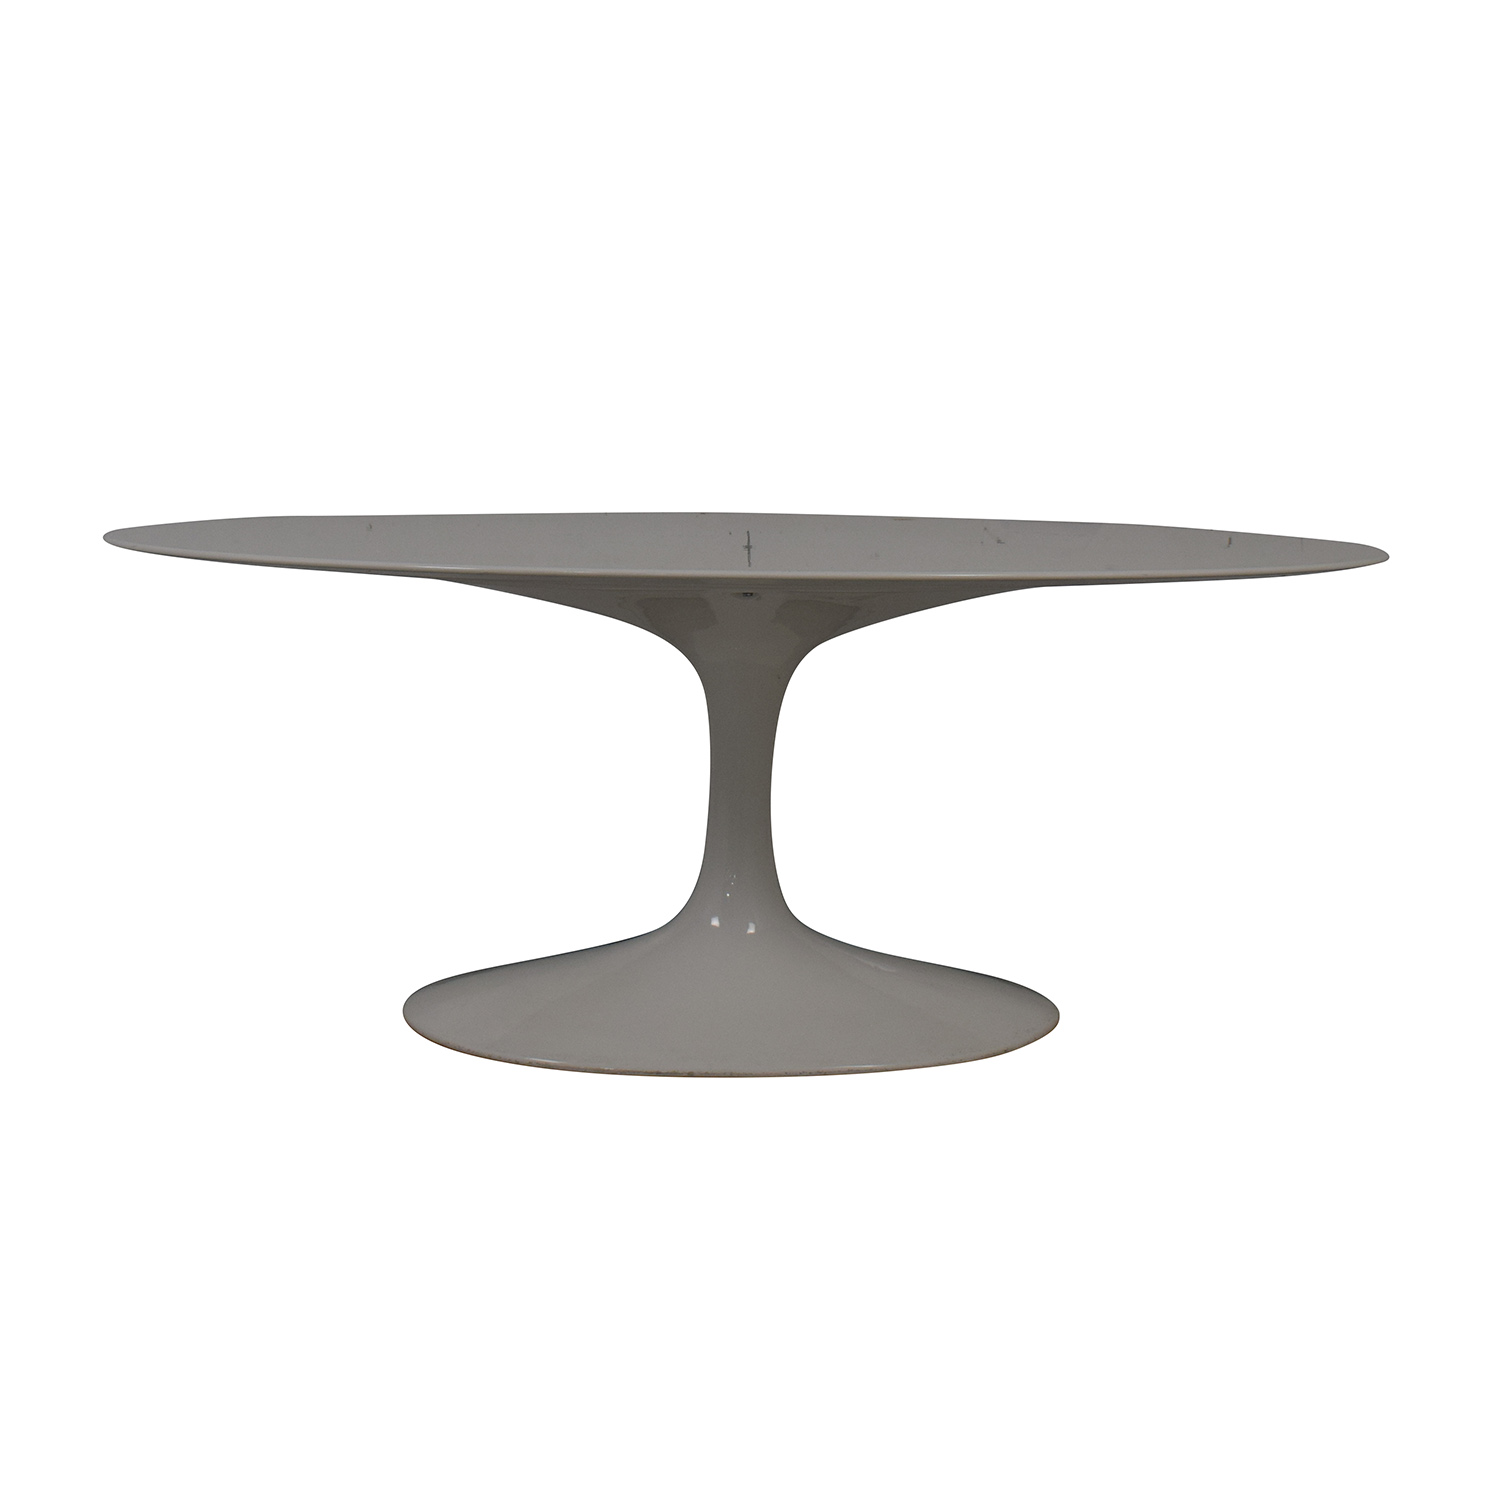 Replica Saarinen-Style Dining Table dimensions